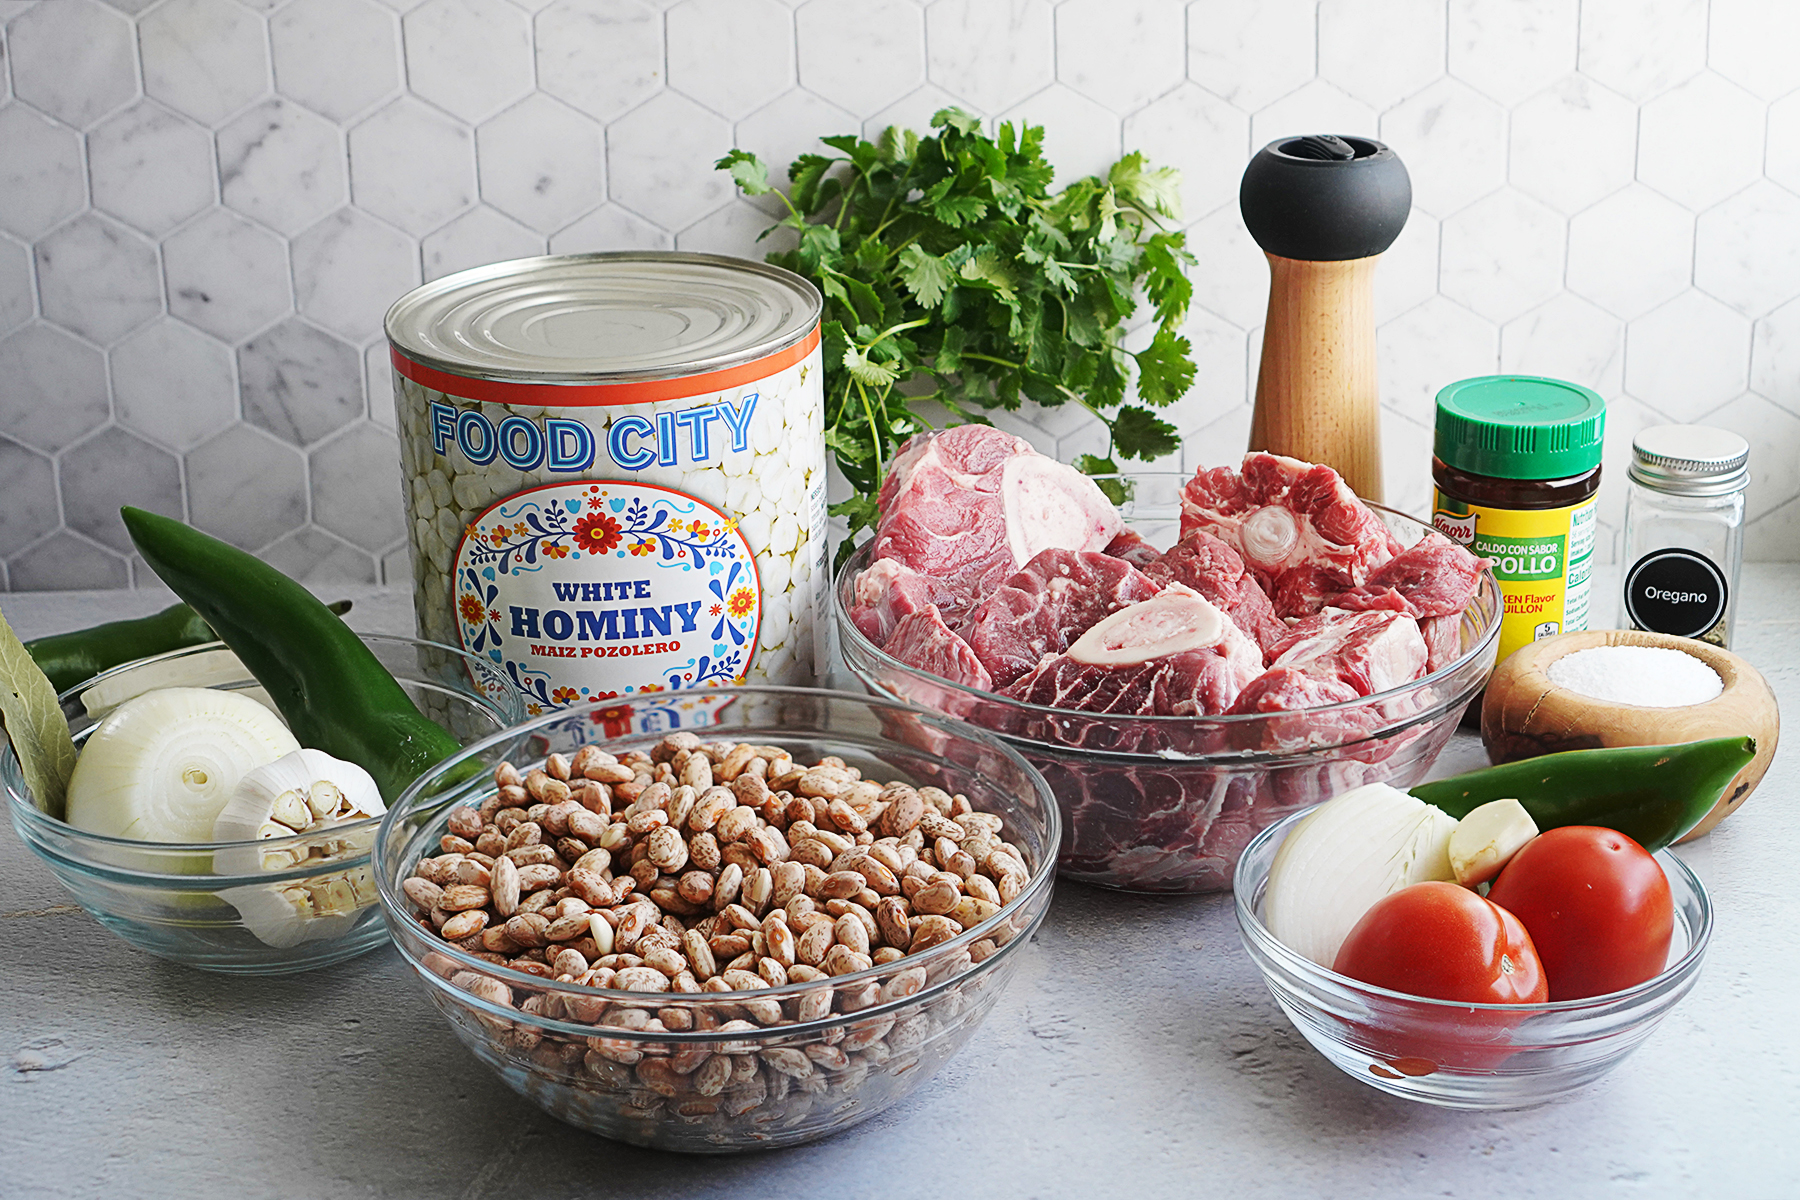 Ingredients: hominy in a can, pinto beans, onions, garlic, beef, tomato, and spices